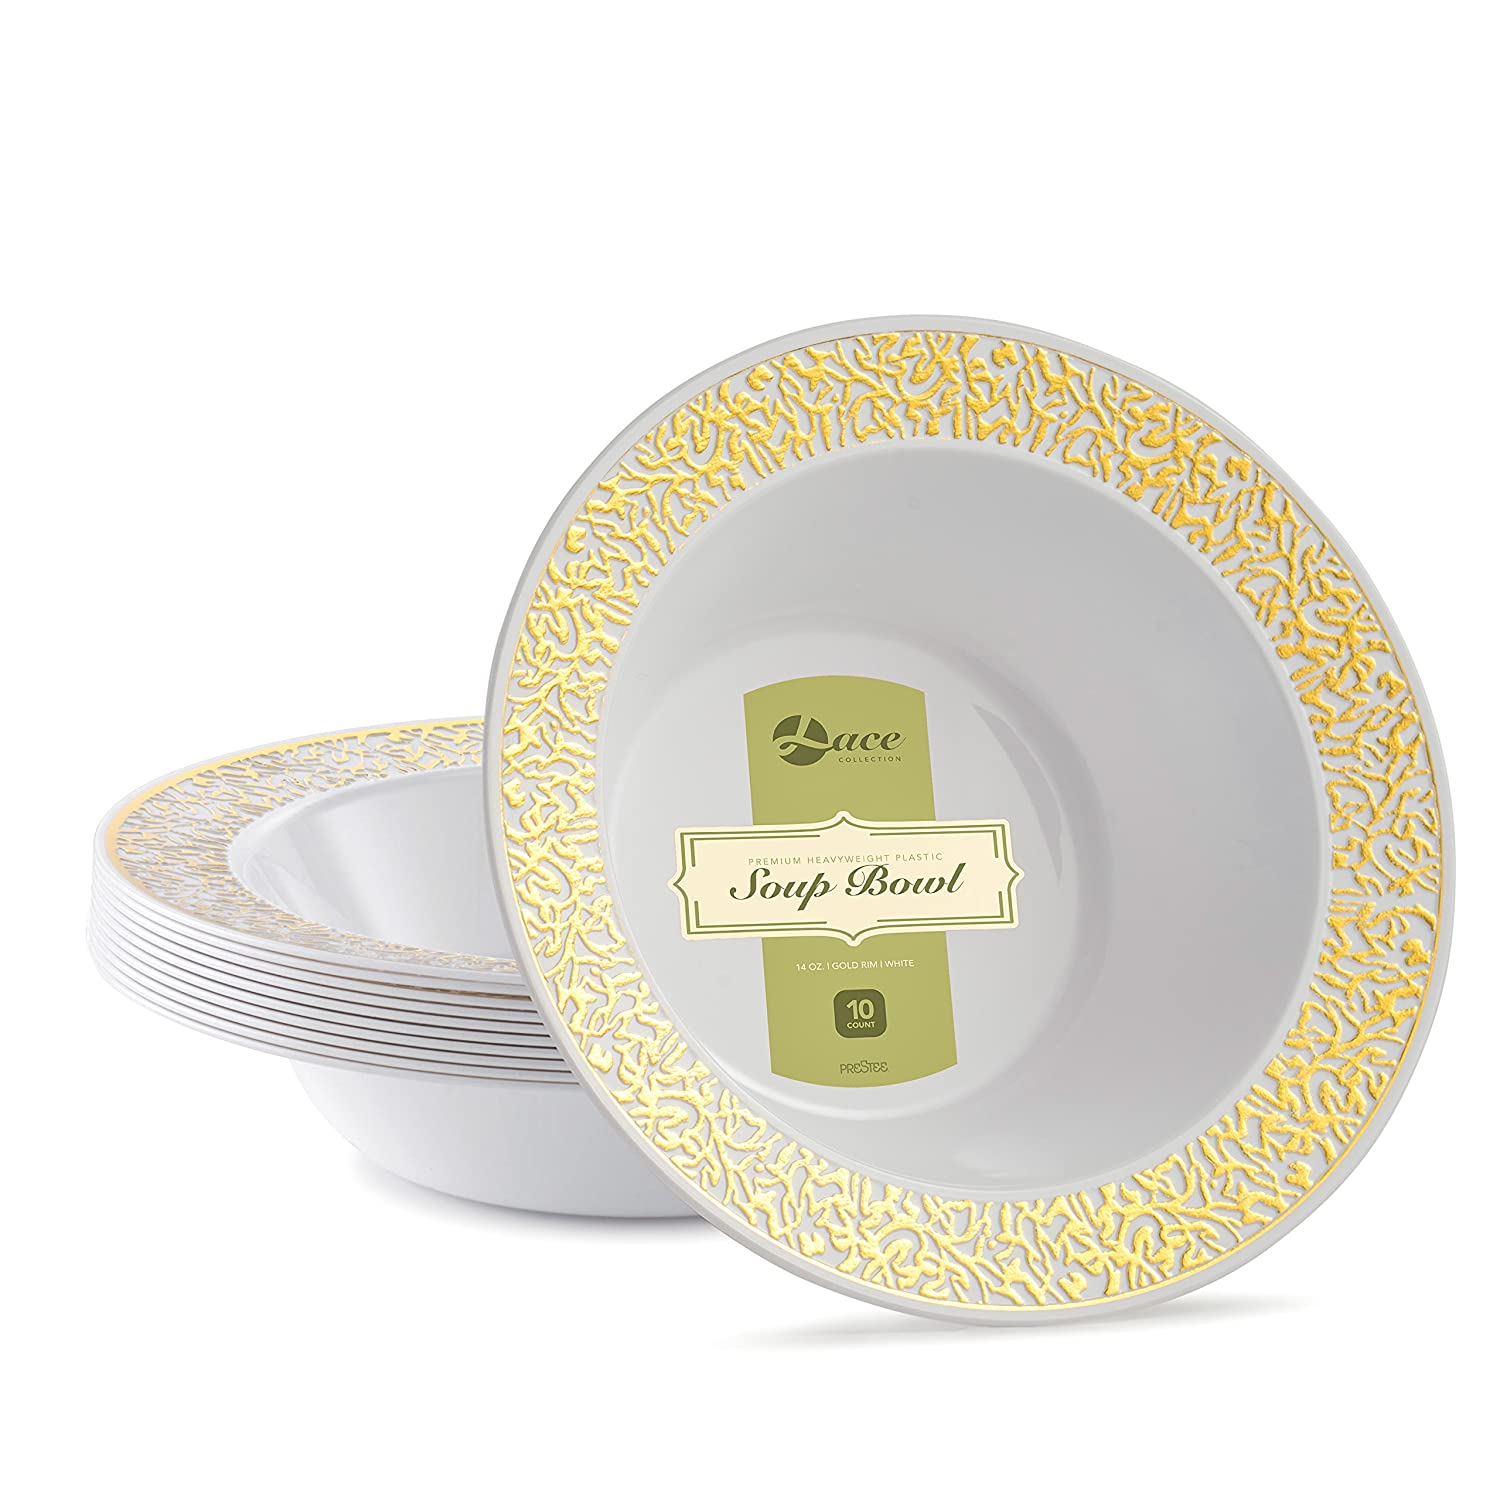 LACE PLASTIC PARTY DISPOSABLE PLATES | 6 Inch Hard Round Wedding Dessert Plates | White with Gold Rim, 40 Pack | Elegant & Fancy Heavy Duty Party Supplies Plates for all Holidays & Occasions Prestee